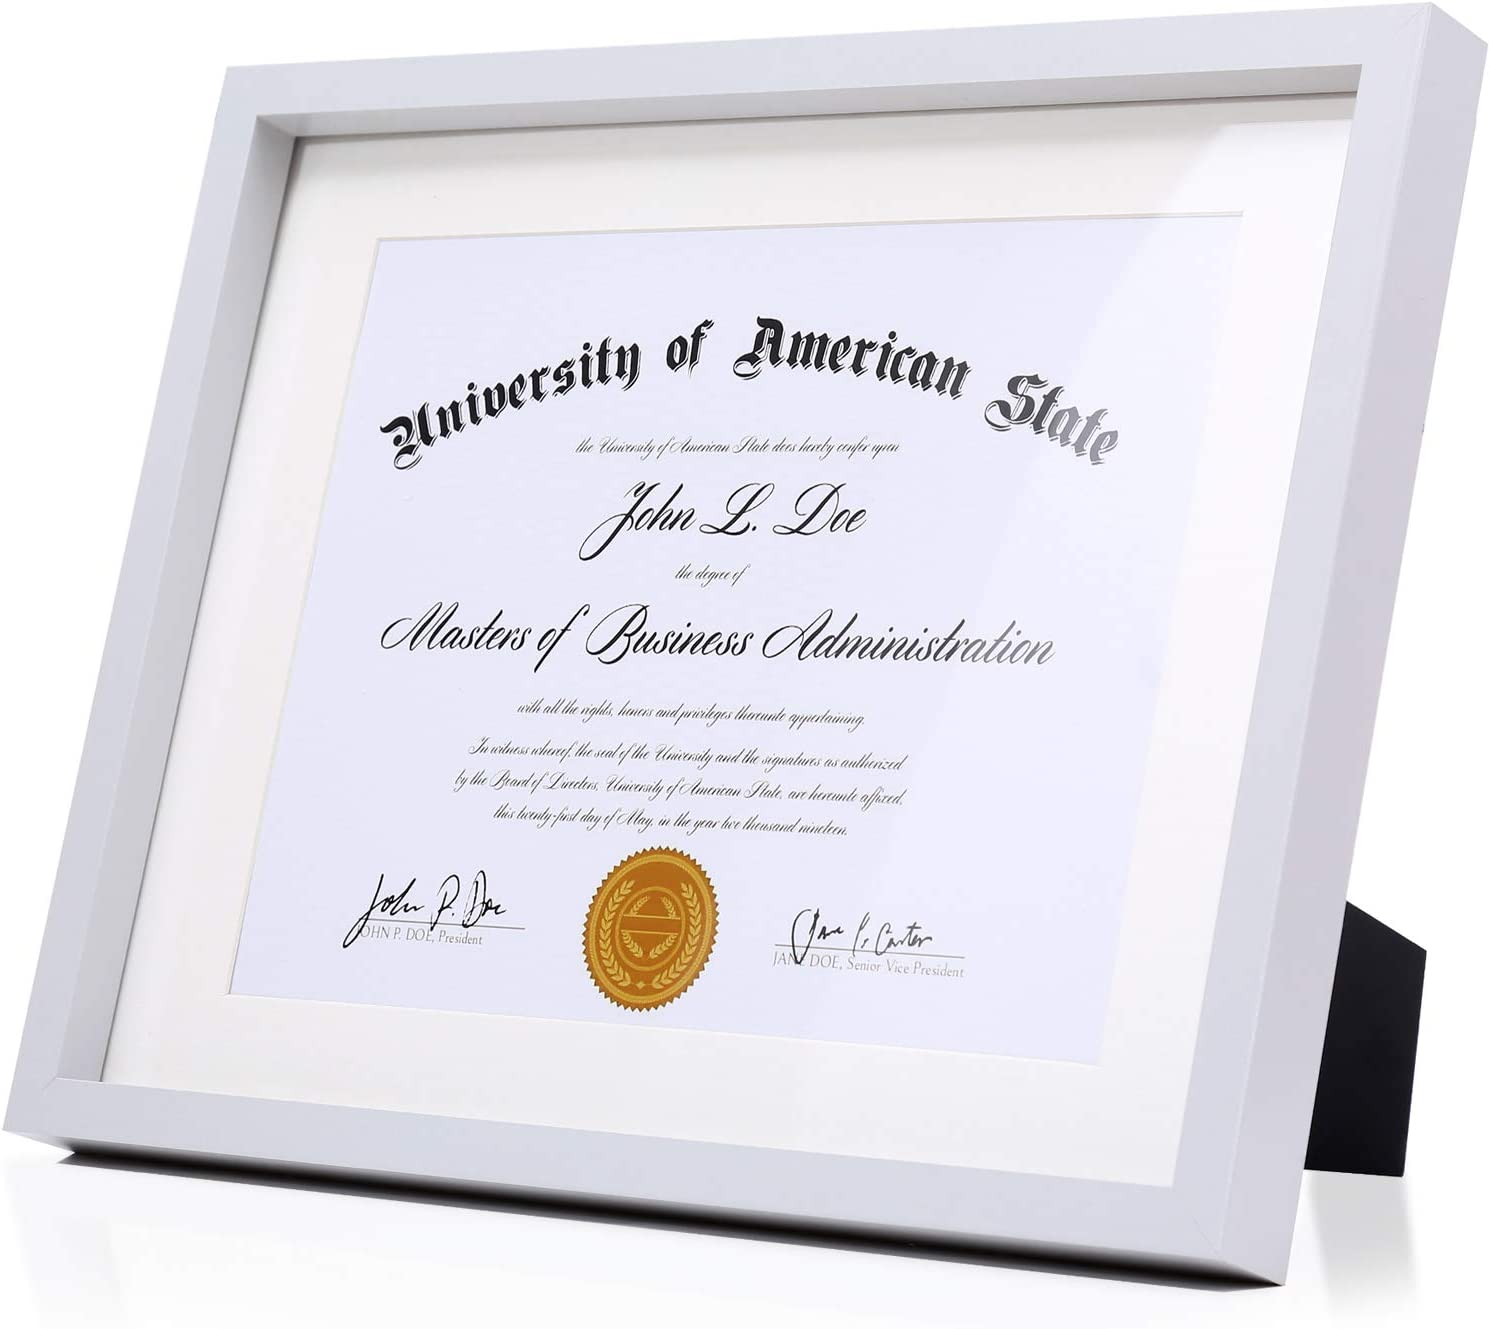 Modern Grey Diploma Frame Solid Wood 11x14 with Adhesive Wall Hooks, Nail Hooks, 2 White Mats Sized: 8.5x11 or 8x10 For Documents, Degrees, Certificate, Photo, Pictures, Certification, Tempered Glass